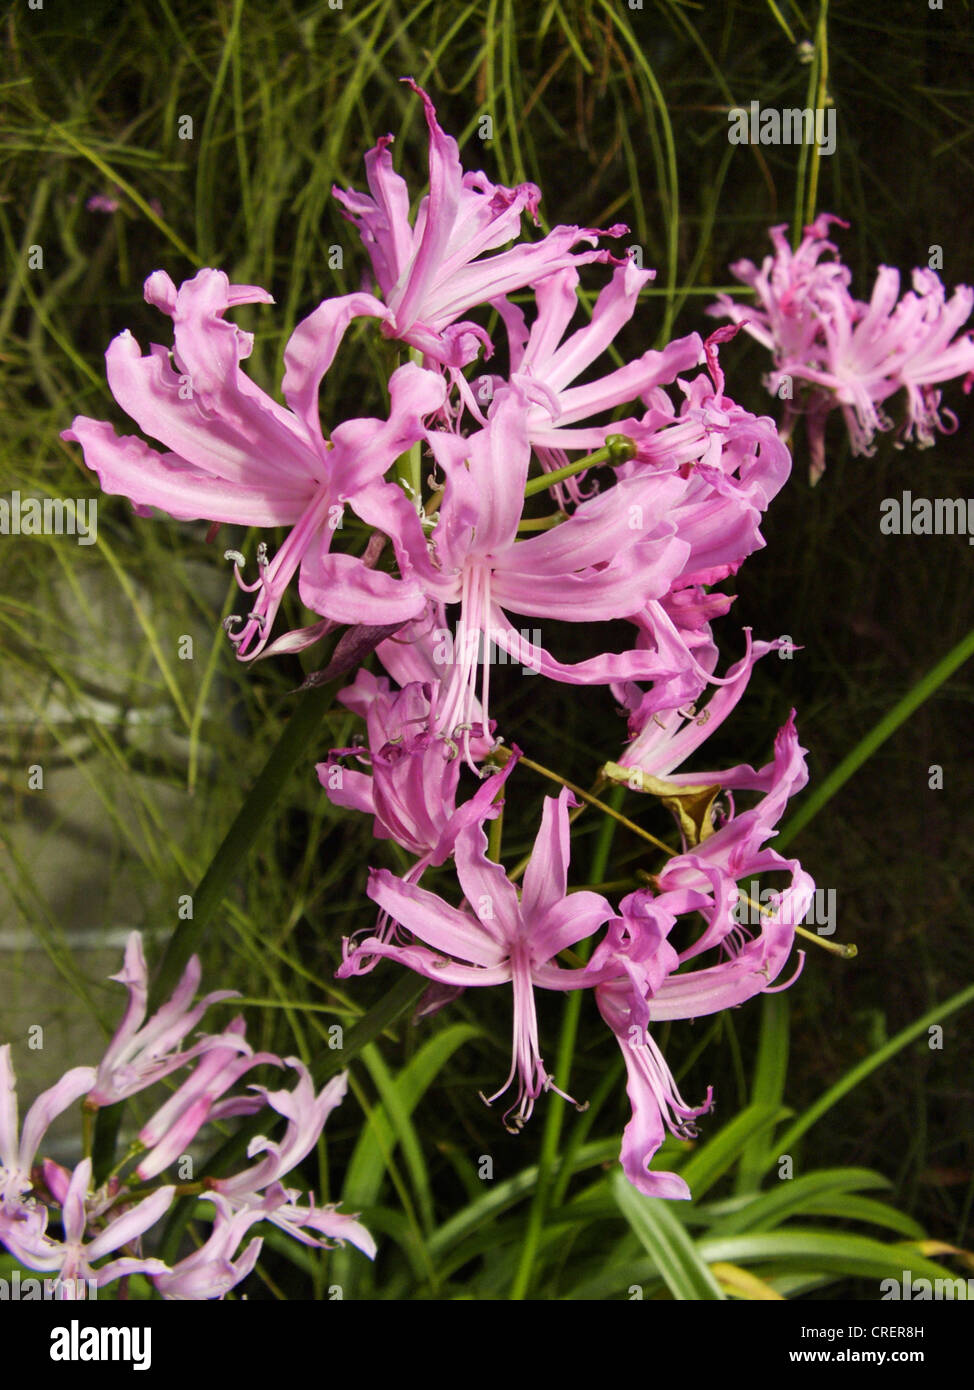 Guernsey lily (Nerine undulata), blooming - Stock Image